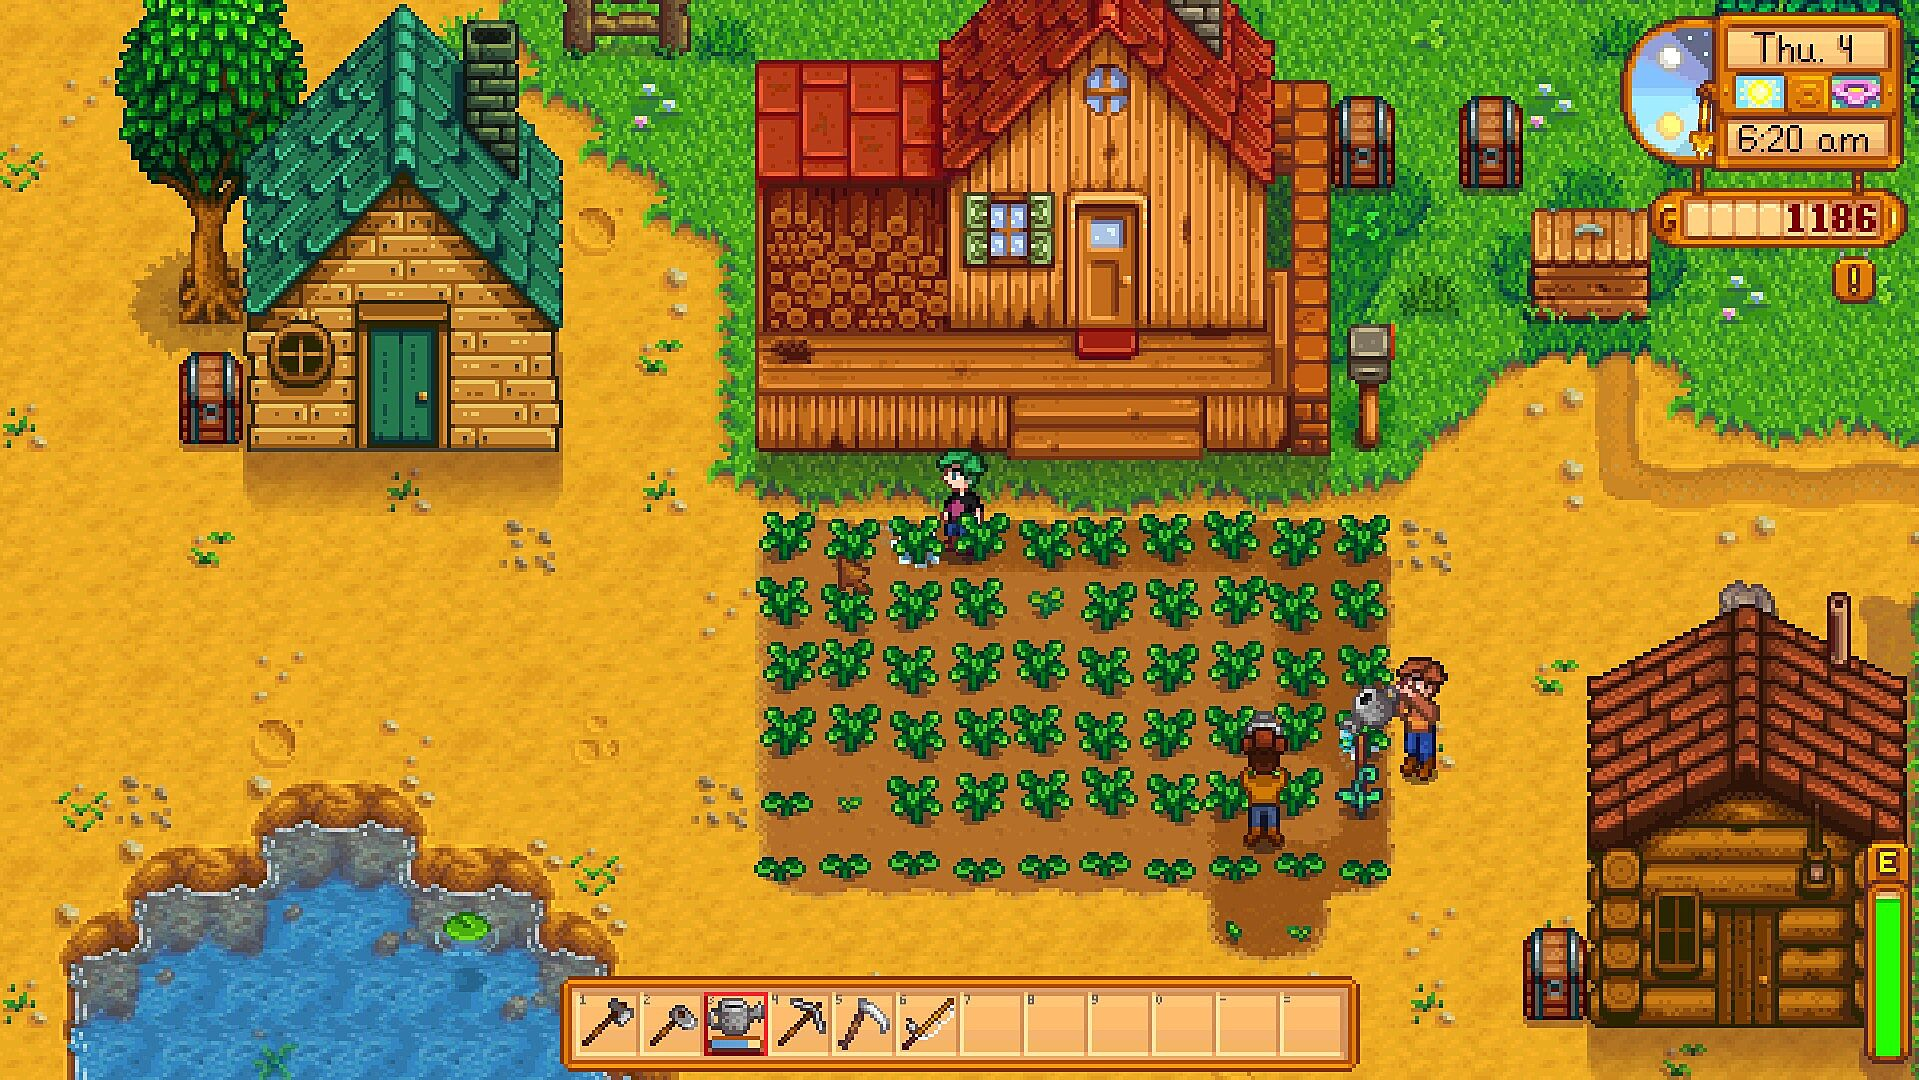 Stardew Valley multiplayer beta preview: The valley comes alive